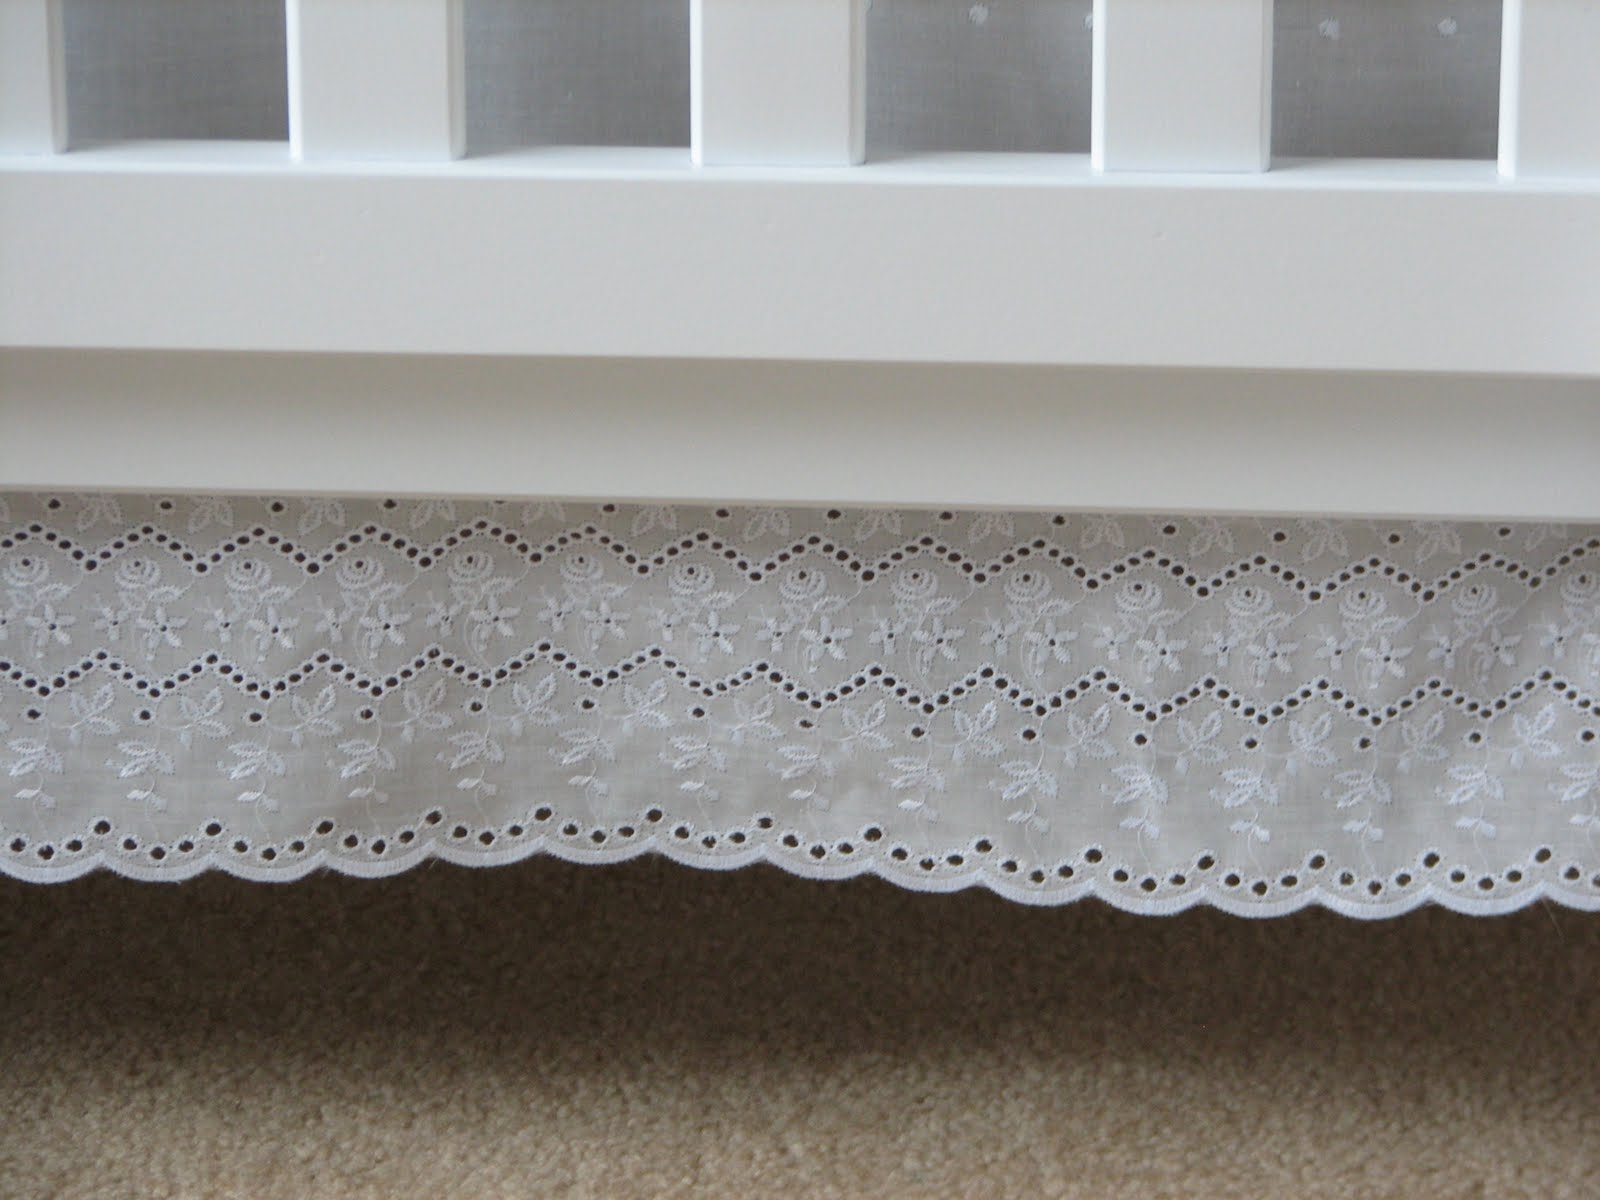 Baby crib gertie - The Crib Skirt Is Made From White Cotton Eyelet Not Only Does The Sweet Scalloped Edge Mimic The Scalloped Pattern Stenciled On The Nursery Walls